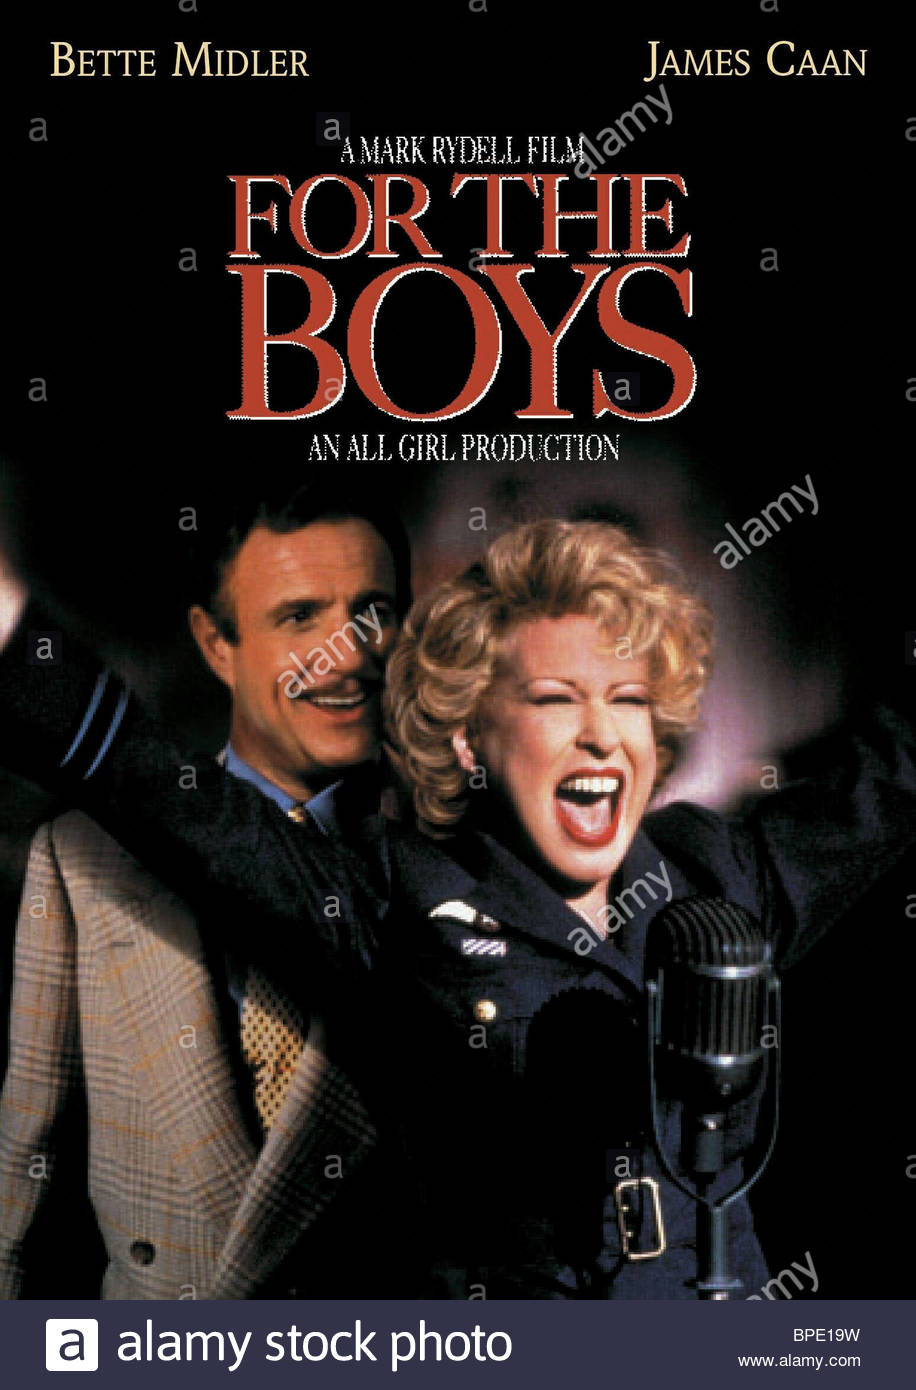 For The Boys (1991) Poster #2